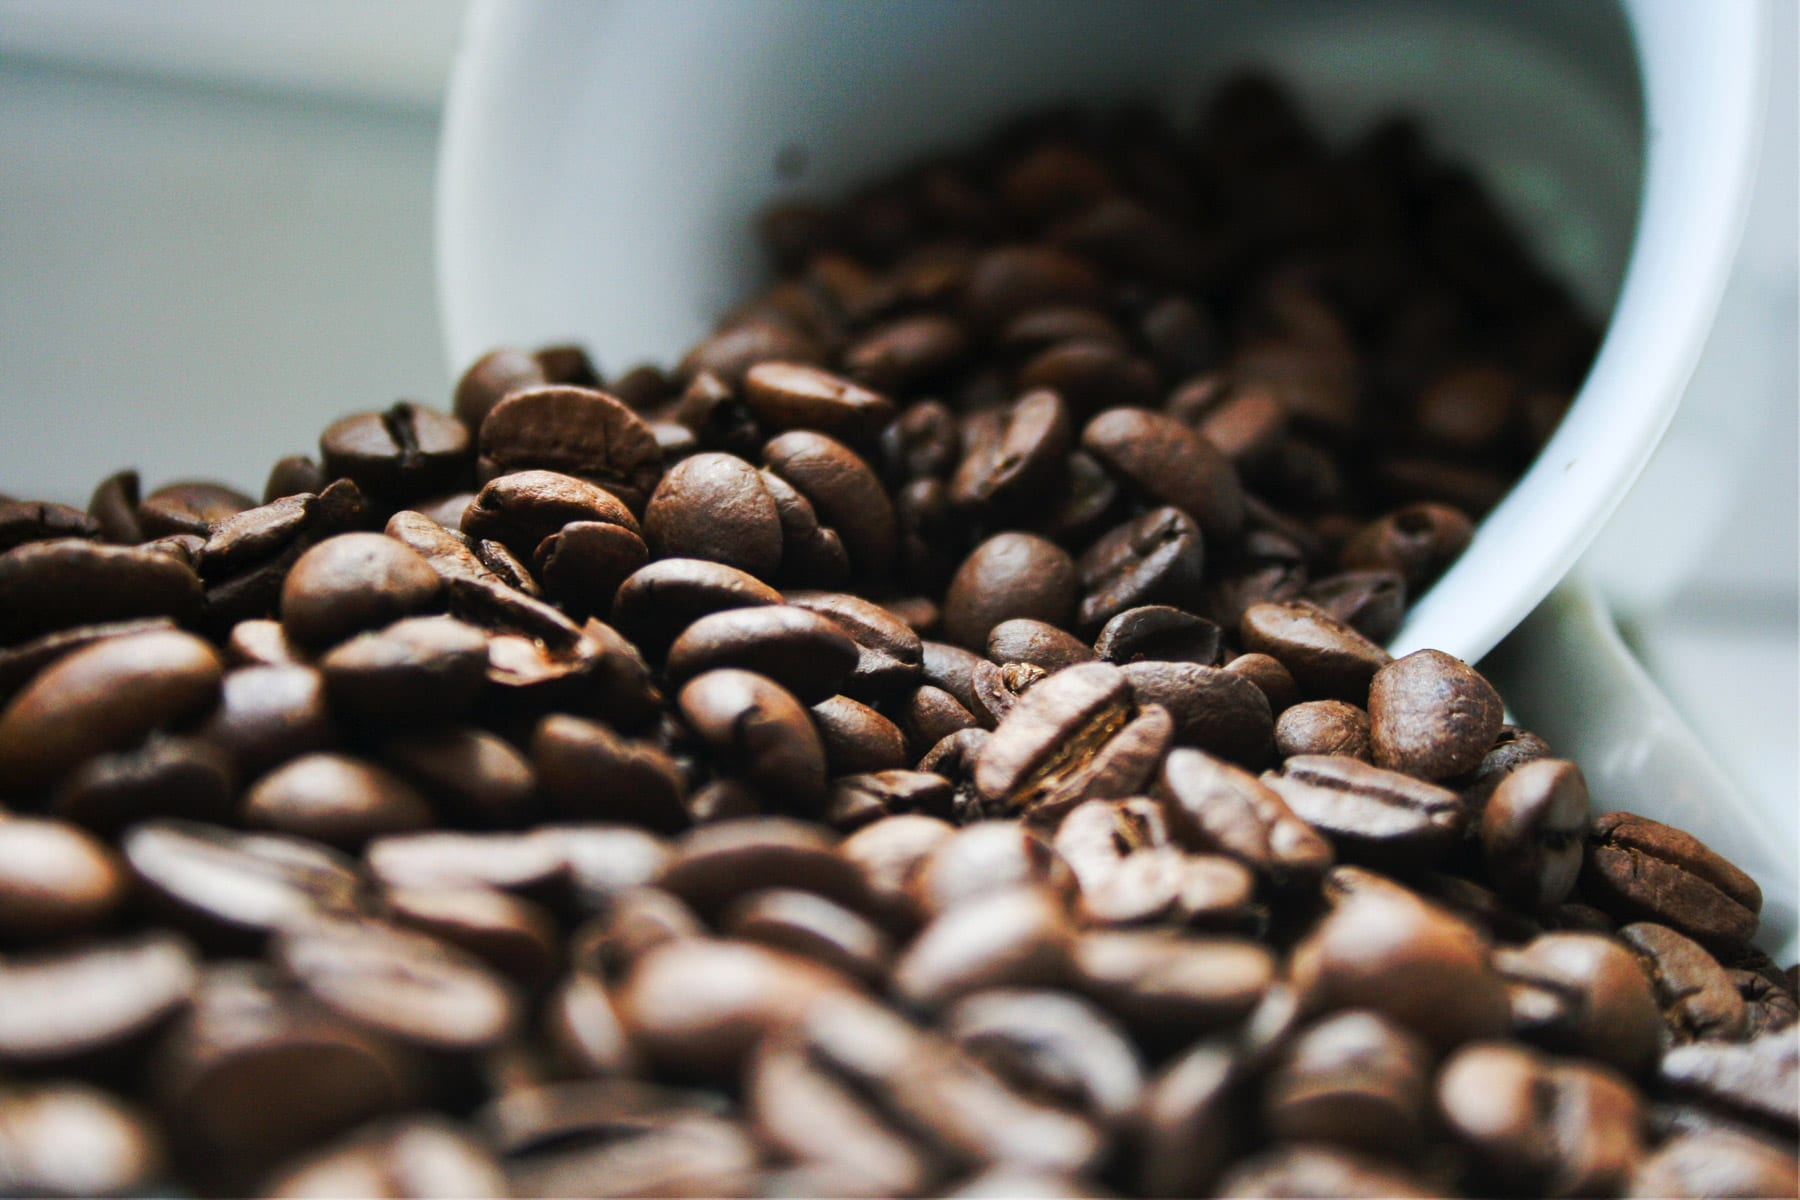 Coffeebeans are made into delicious coffee in coffee machines